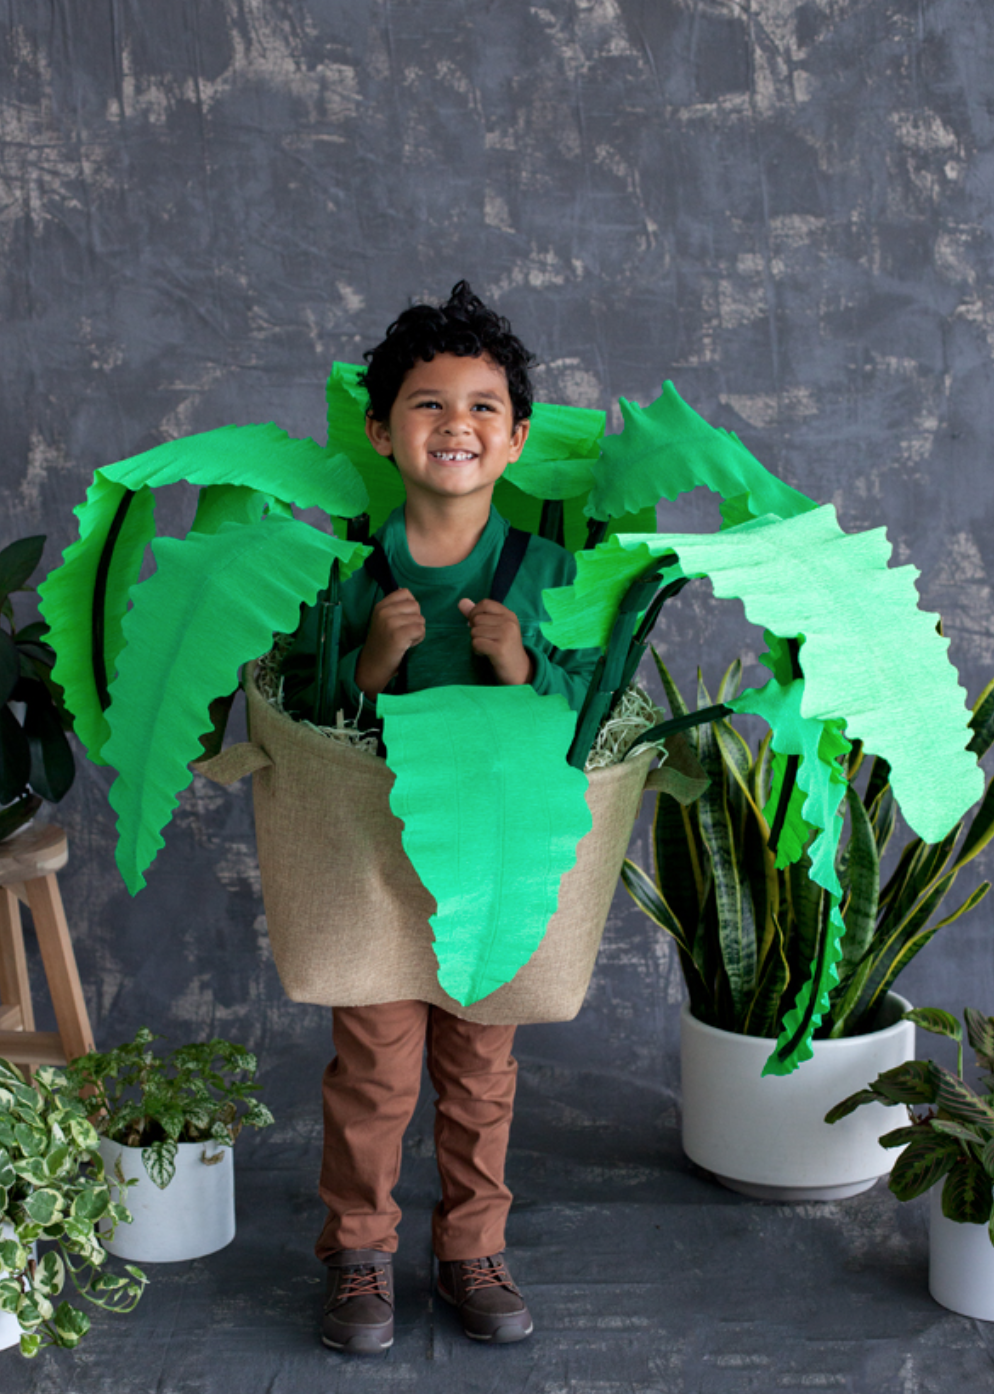 House Plant - What you'll need: Crepe paper, corrugated paper, paint brush, green acrylic paint, brown felt, canvas straps, scissors, basket, hot glue gun and excelsior.